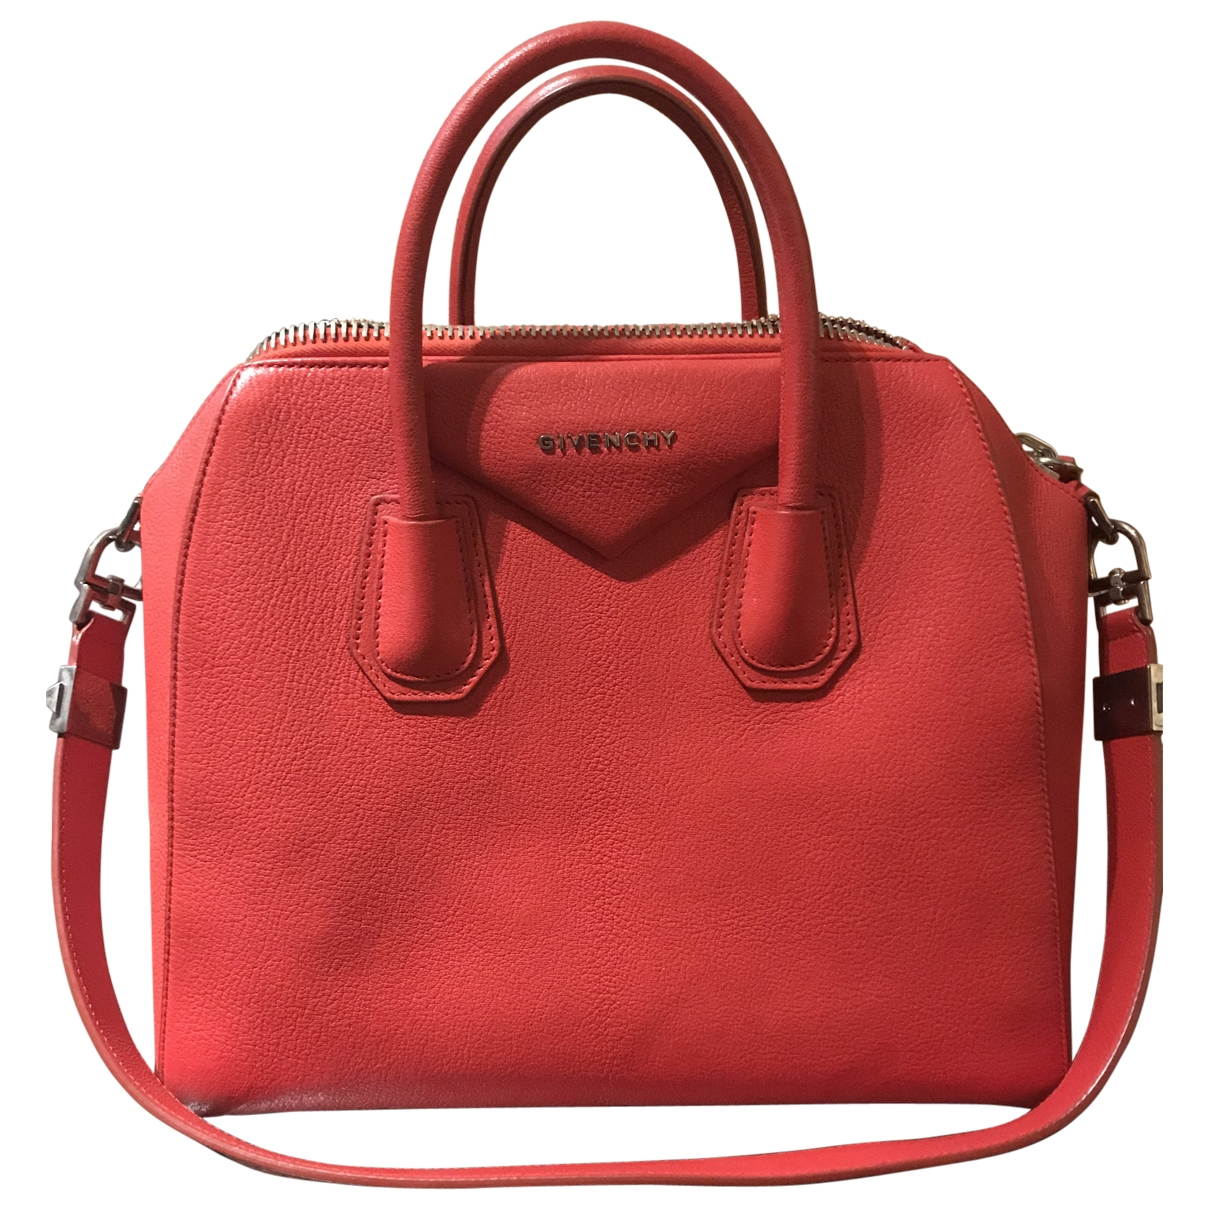 Givenchy Antigona Red Leather handbag for Women \N